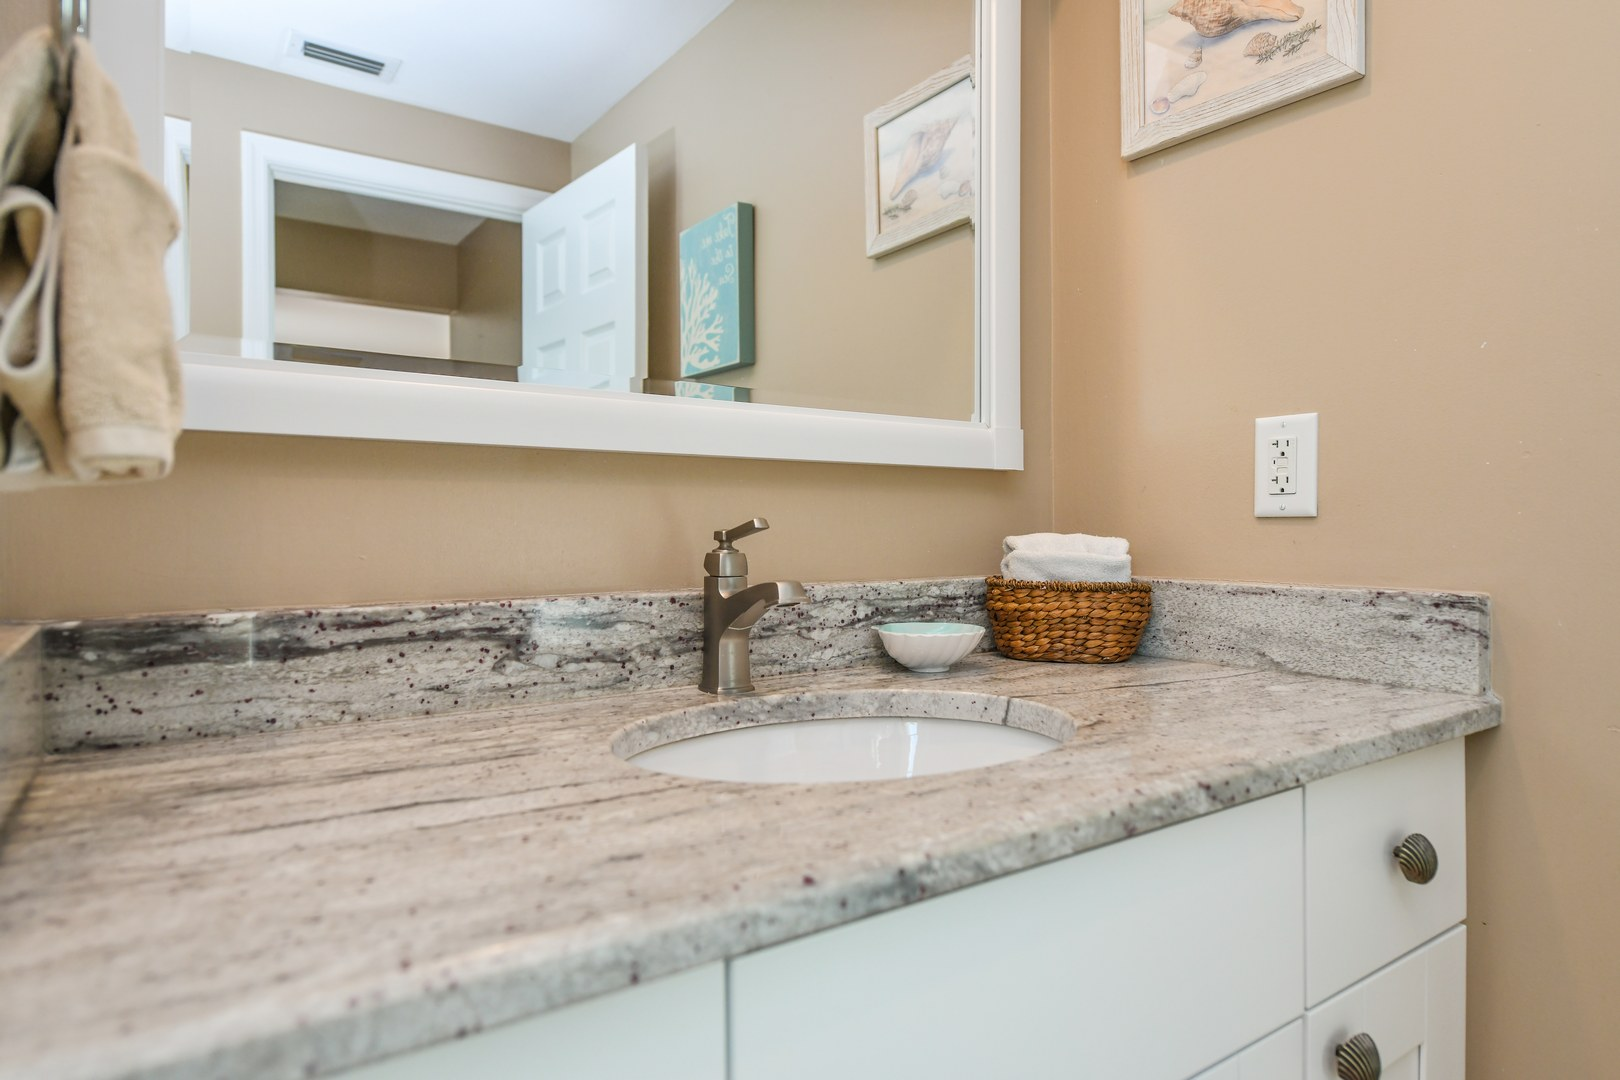 plenty of counter space in bathroom